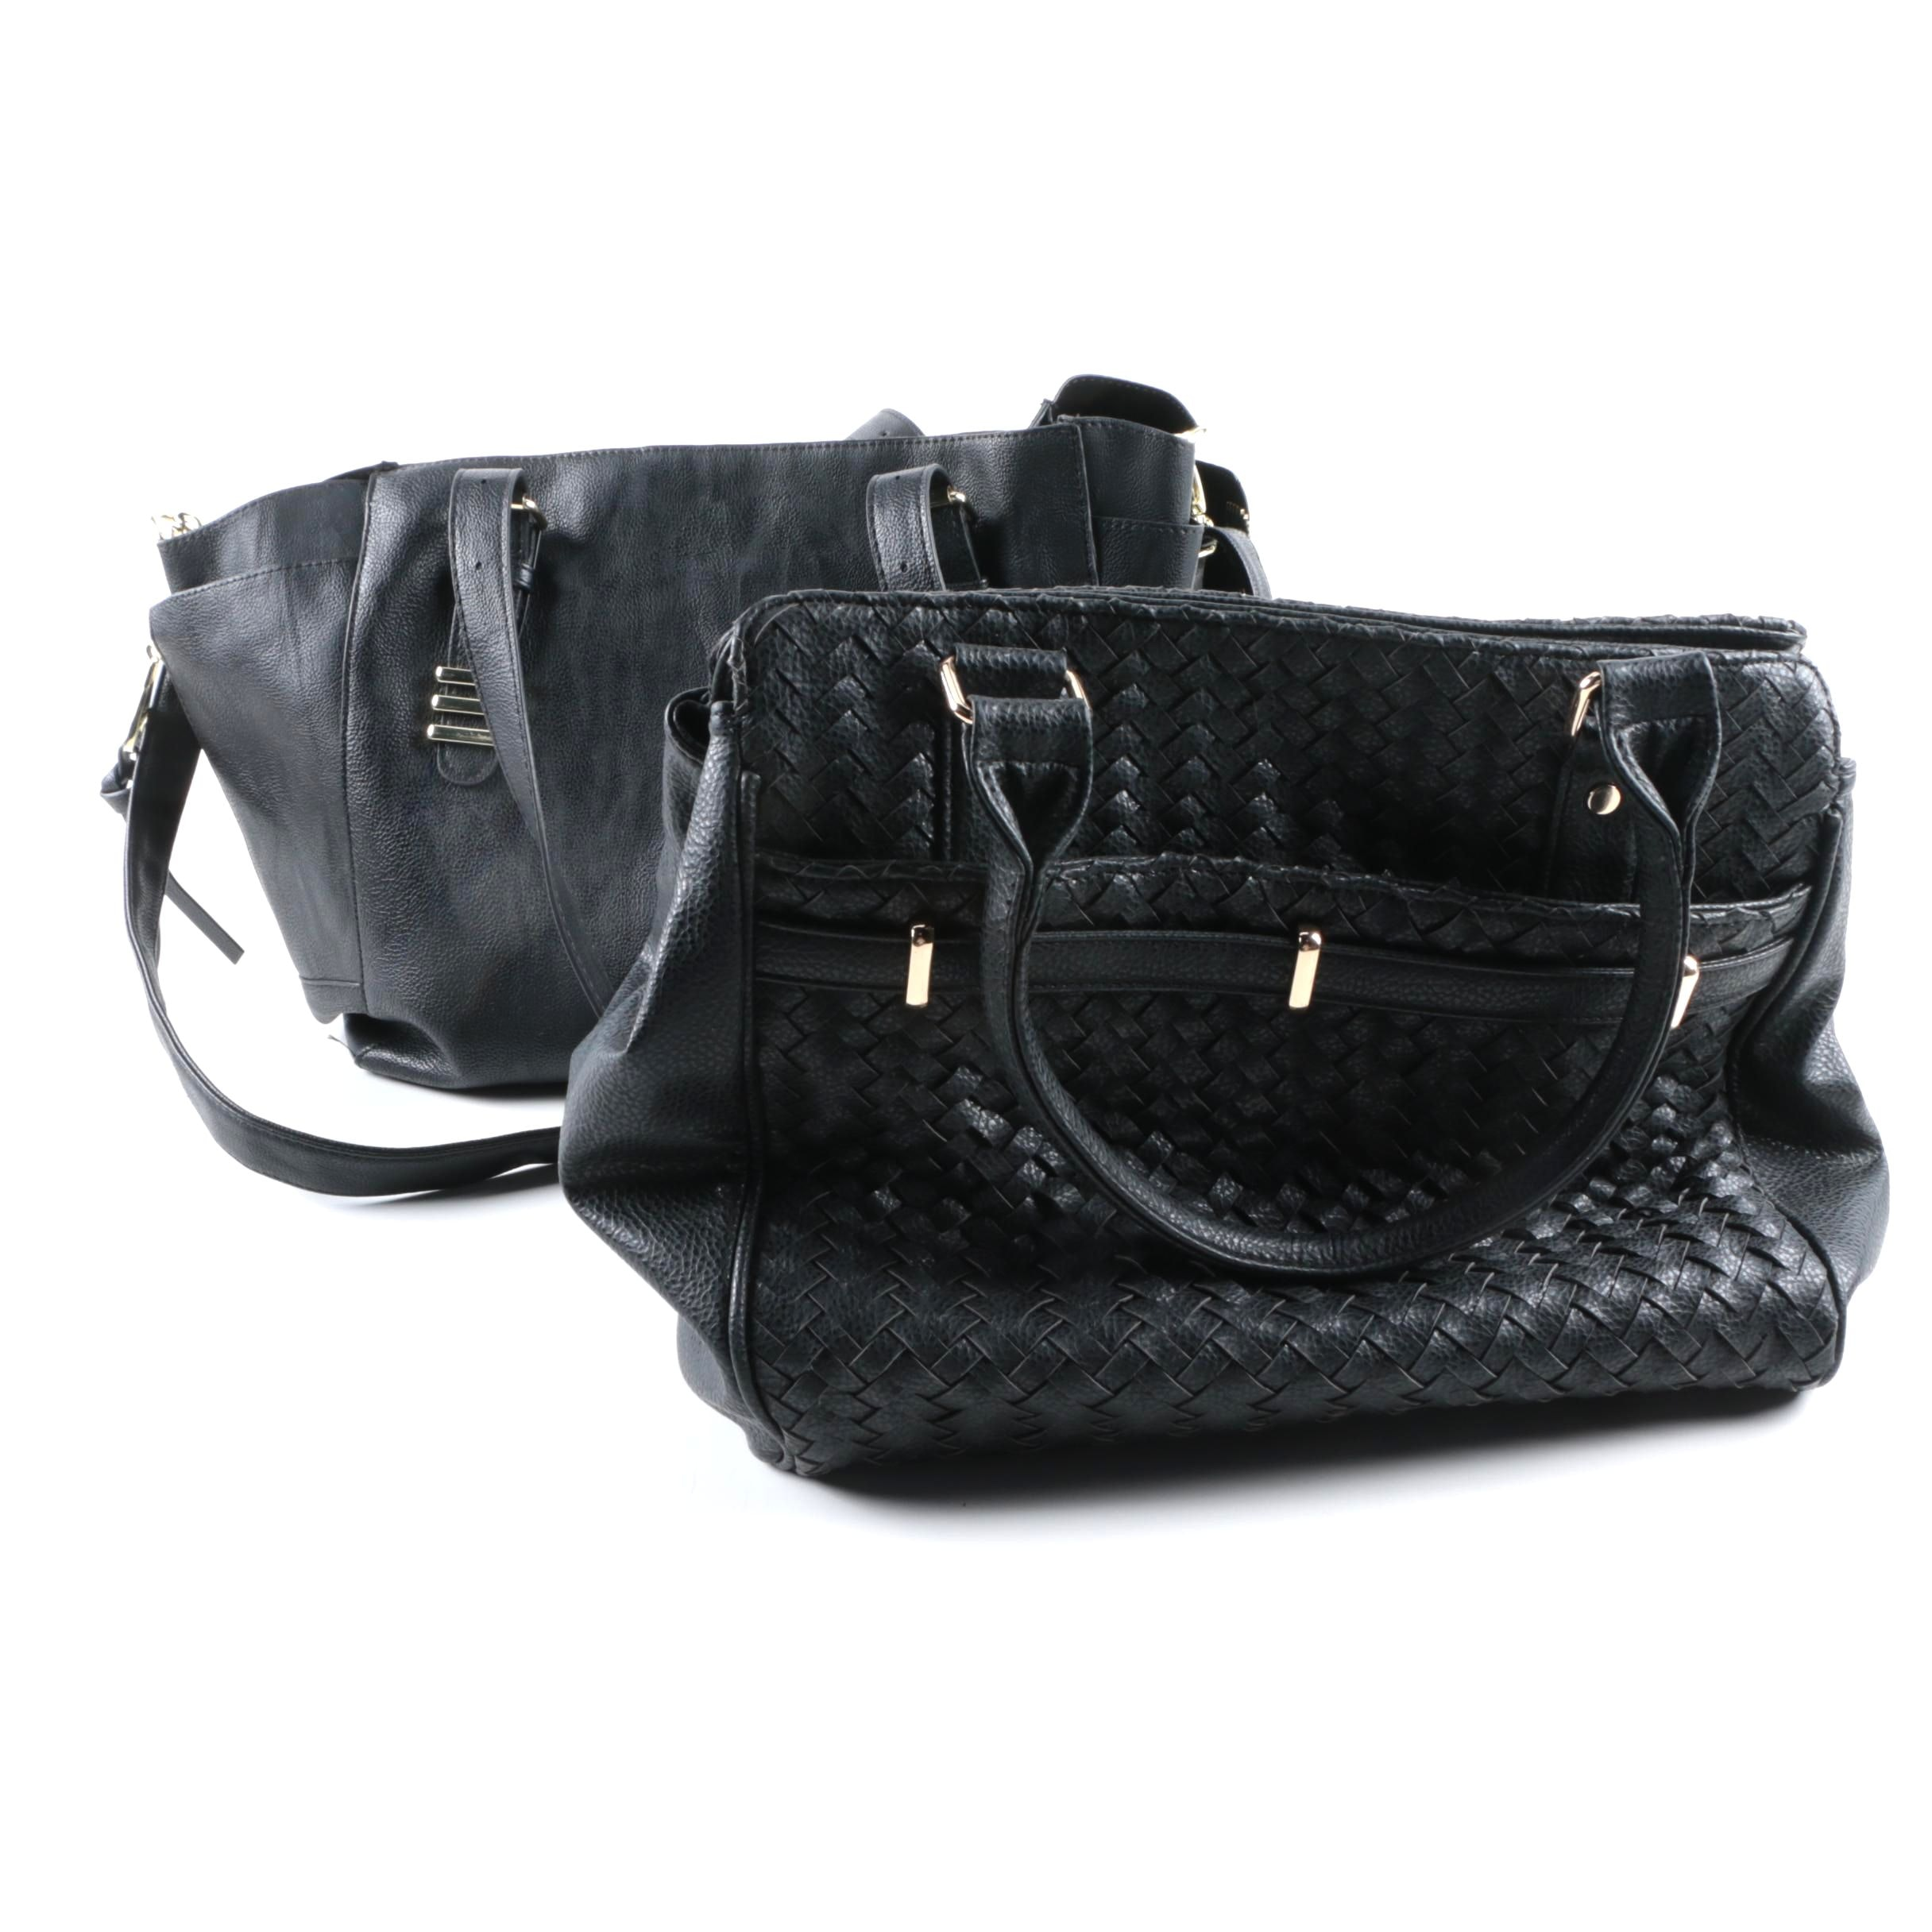 Steve Madden and Deux Lux Black Leather Handbags